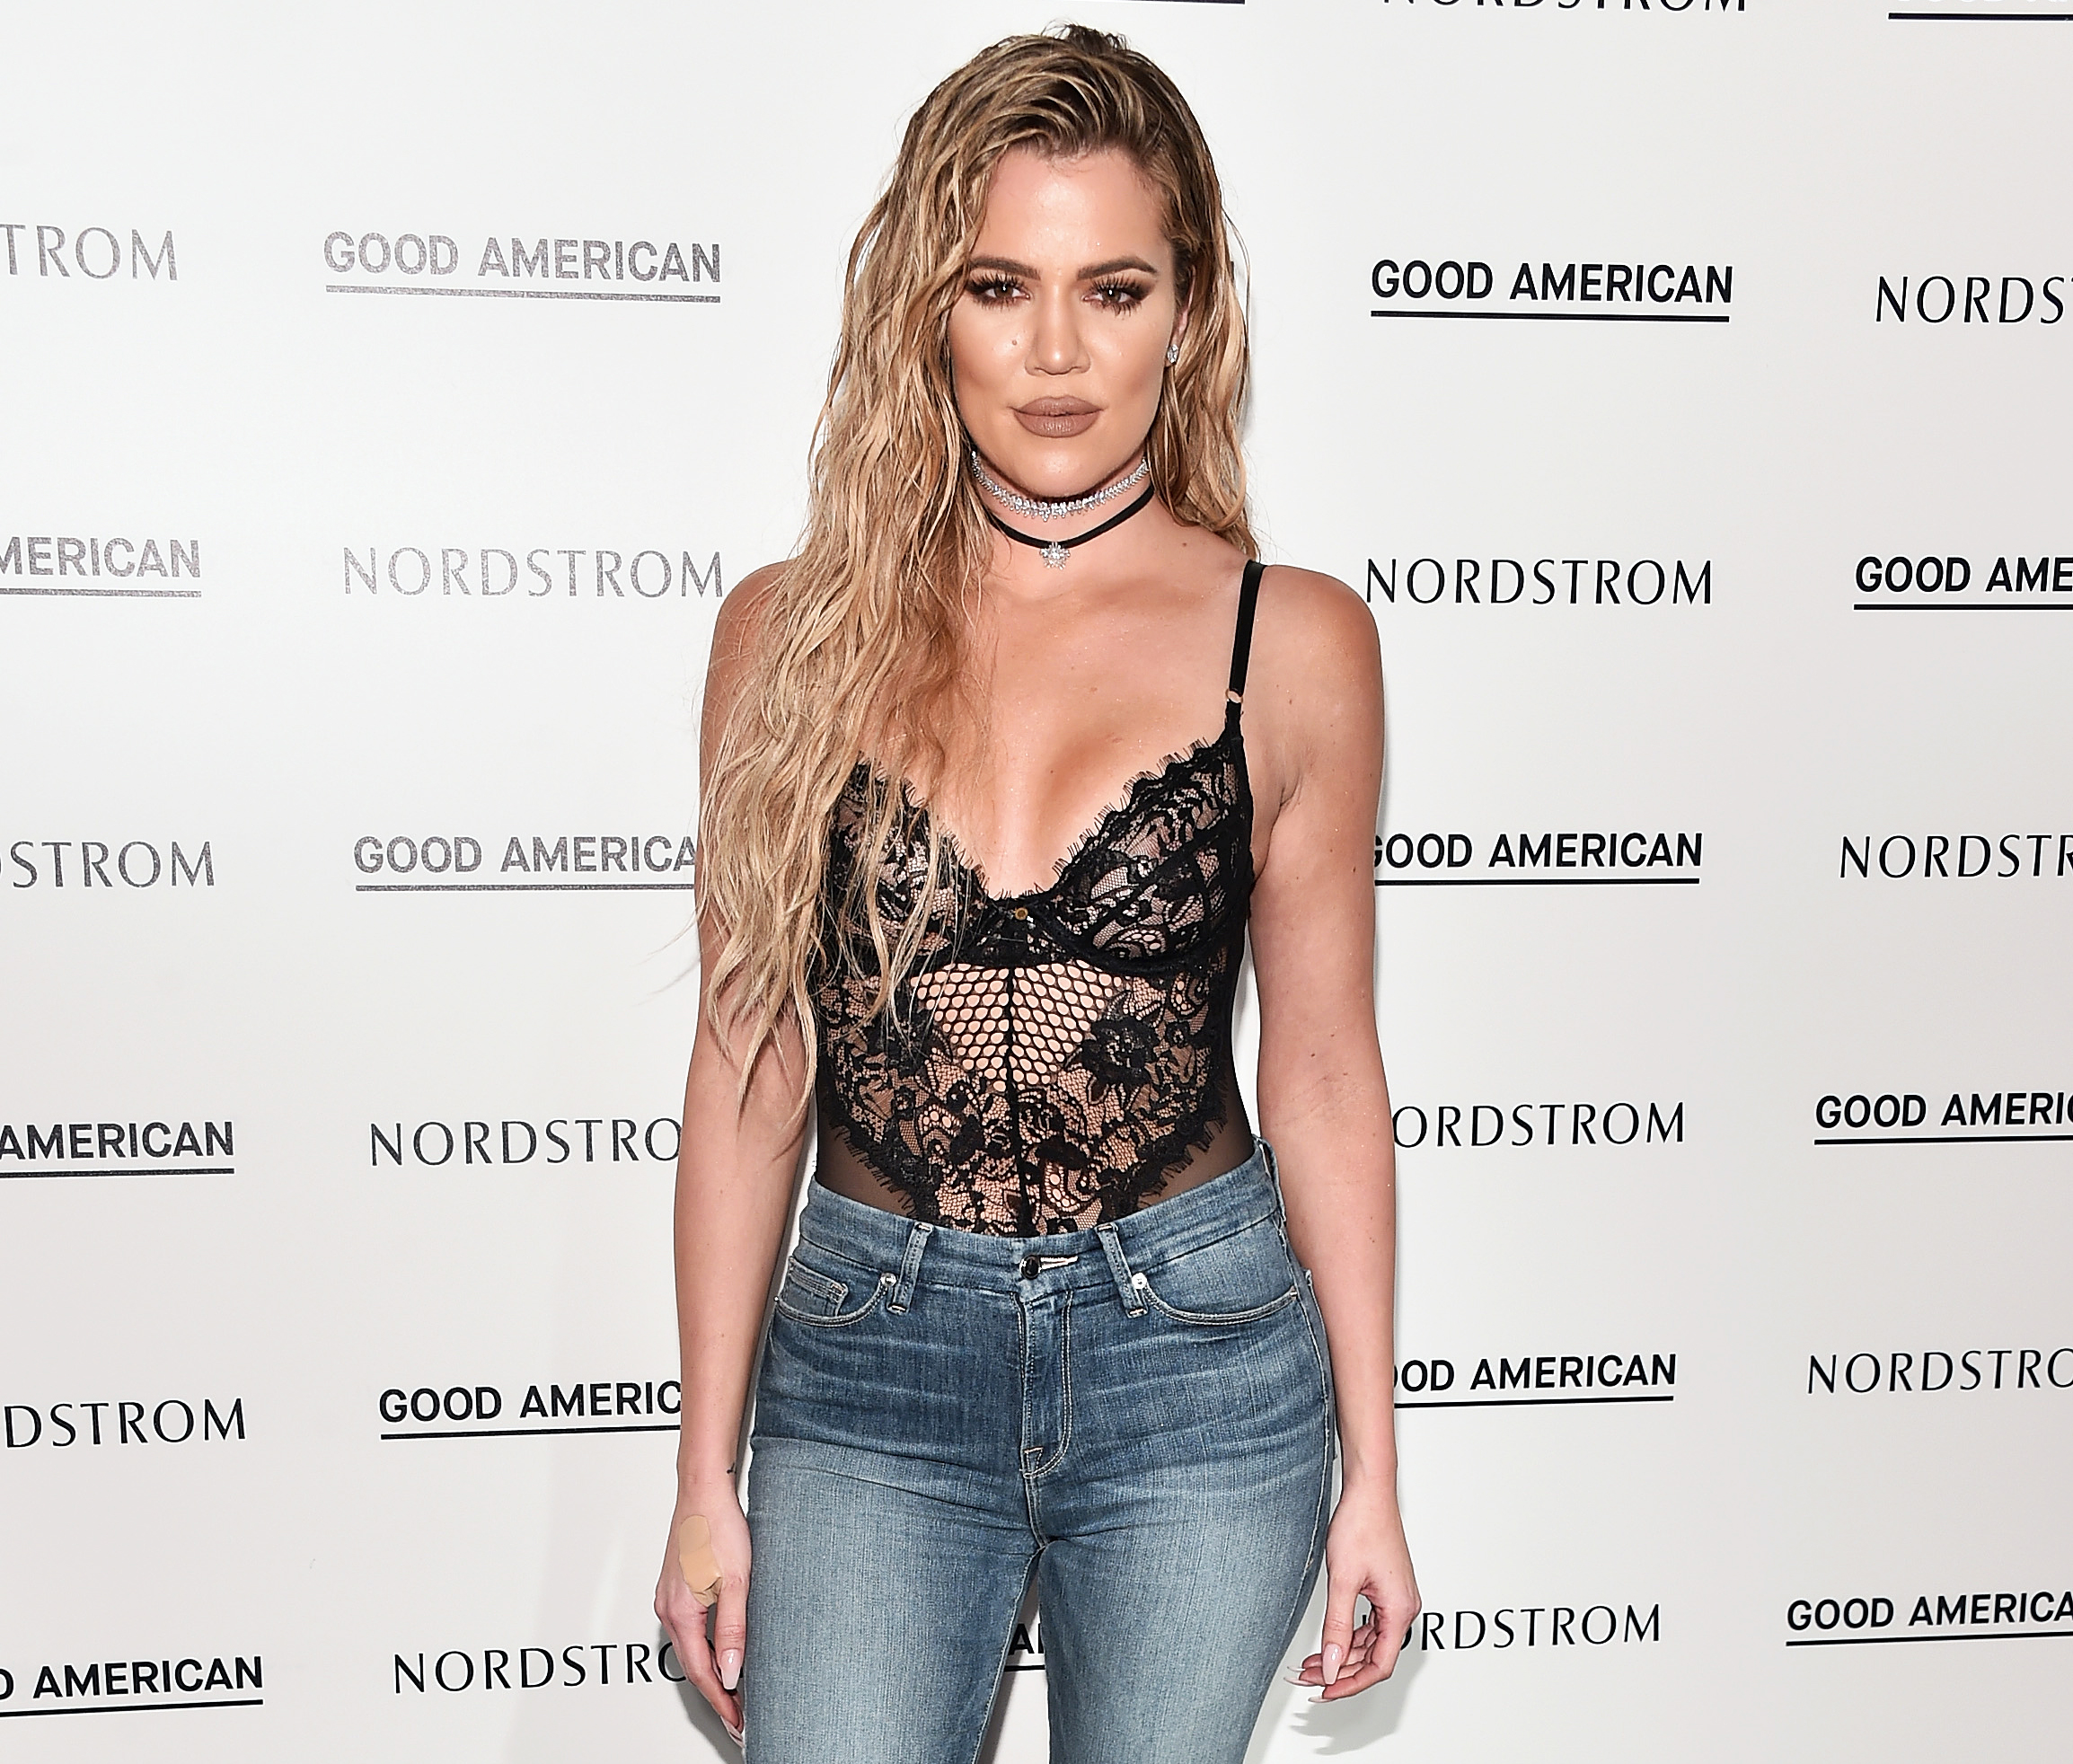 Pic Khloe Kardashian naked (53 photos), Topless, Leaked, Feet, underwear 2019